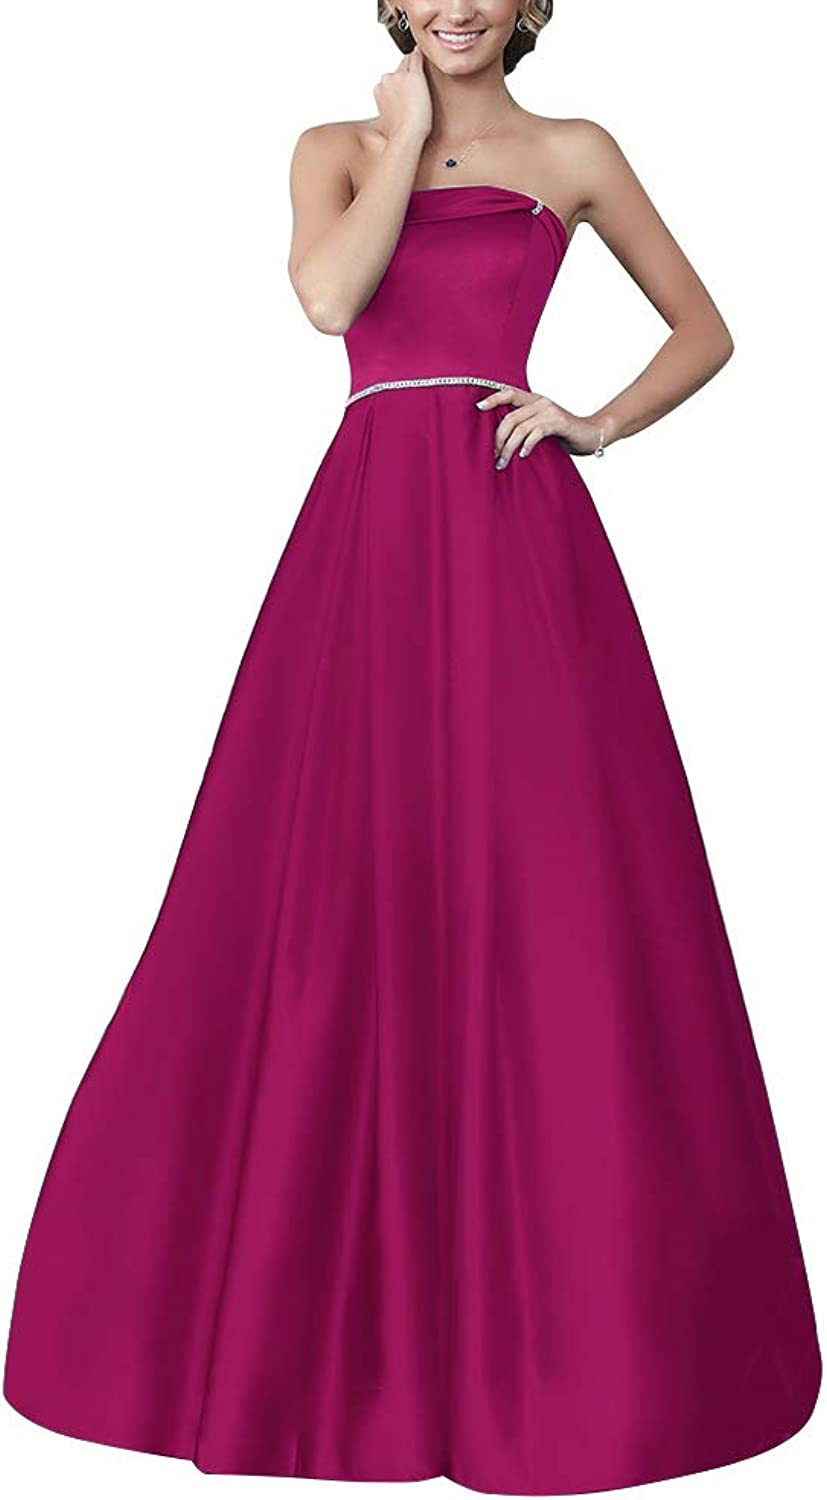 Staypretty Satin Prom Gowns for Women Long Aline Beaded Formal Gown Formal Dresses with Pockets